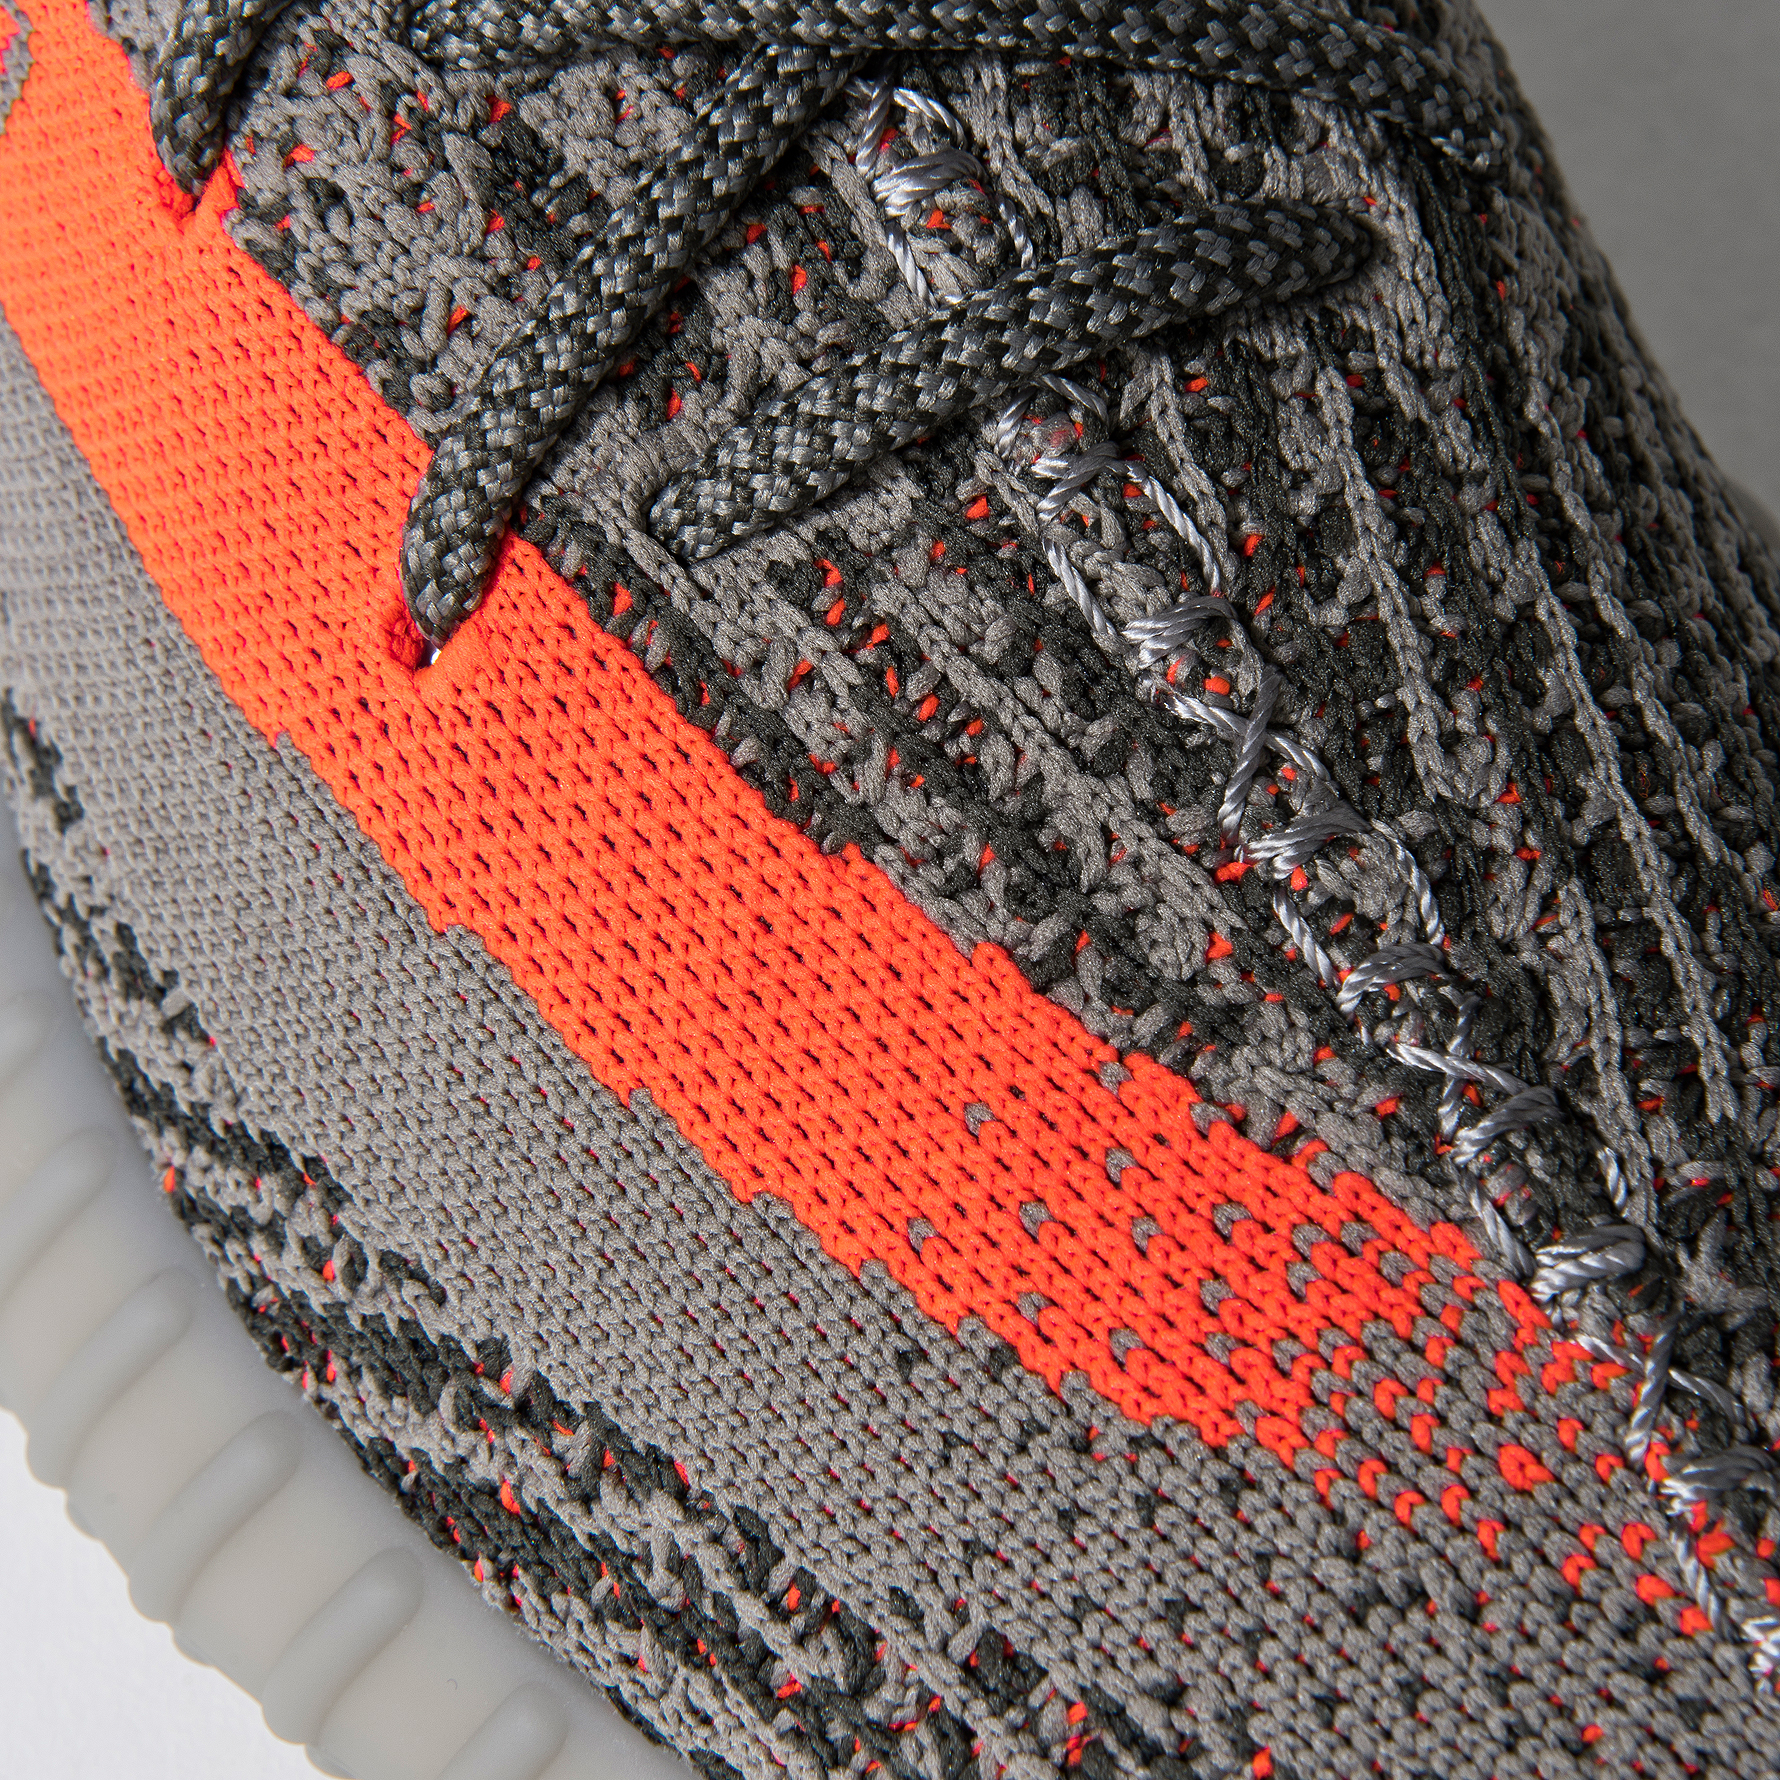 Watch Before You Buy: Yeezy Boost 350